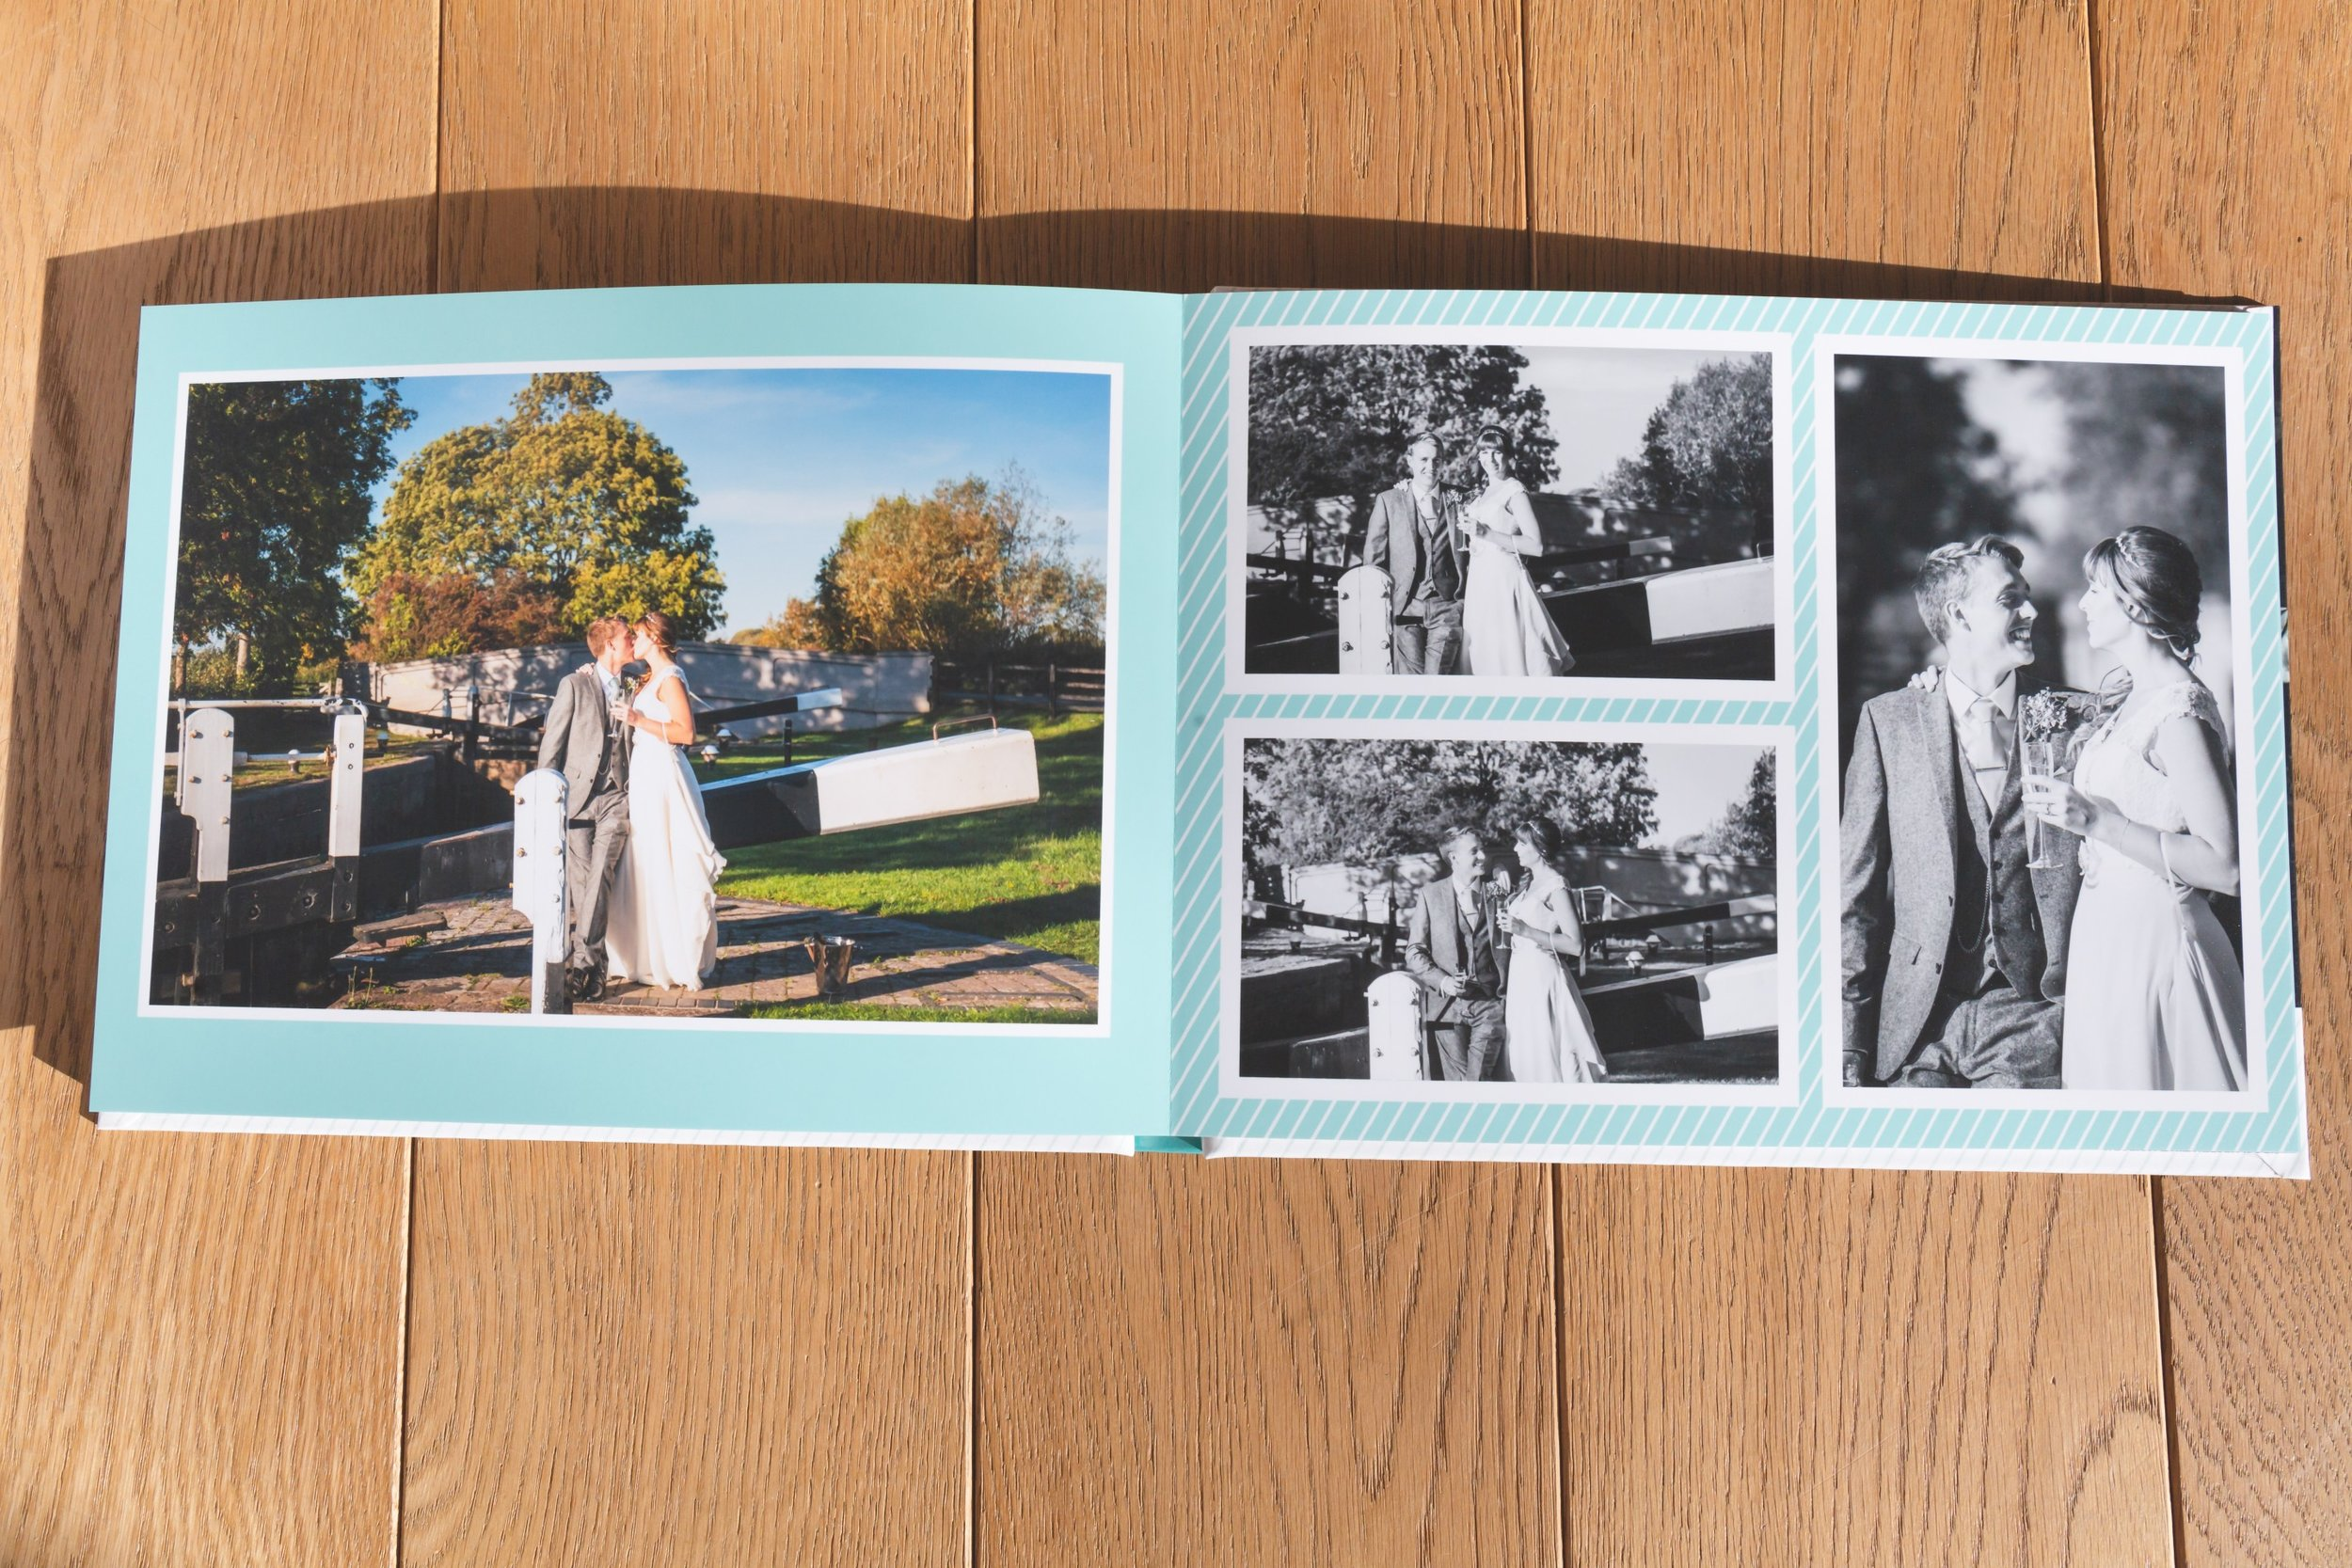 Another inside view of wedding album, Fotovida